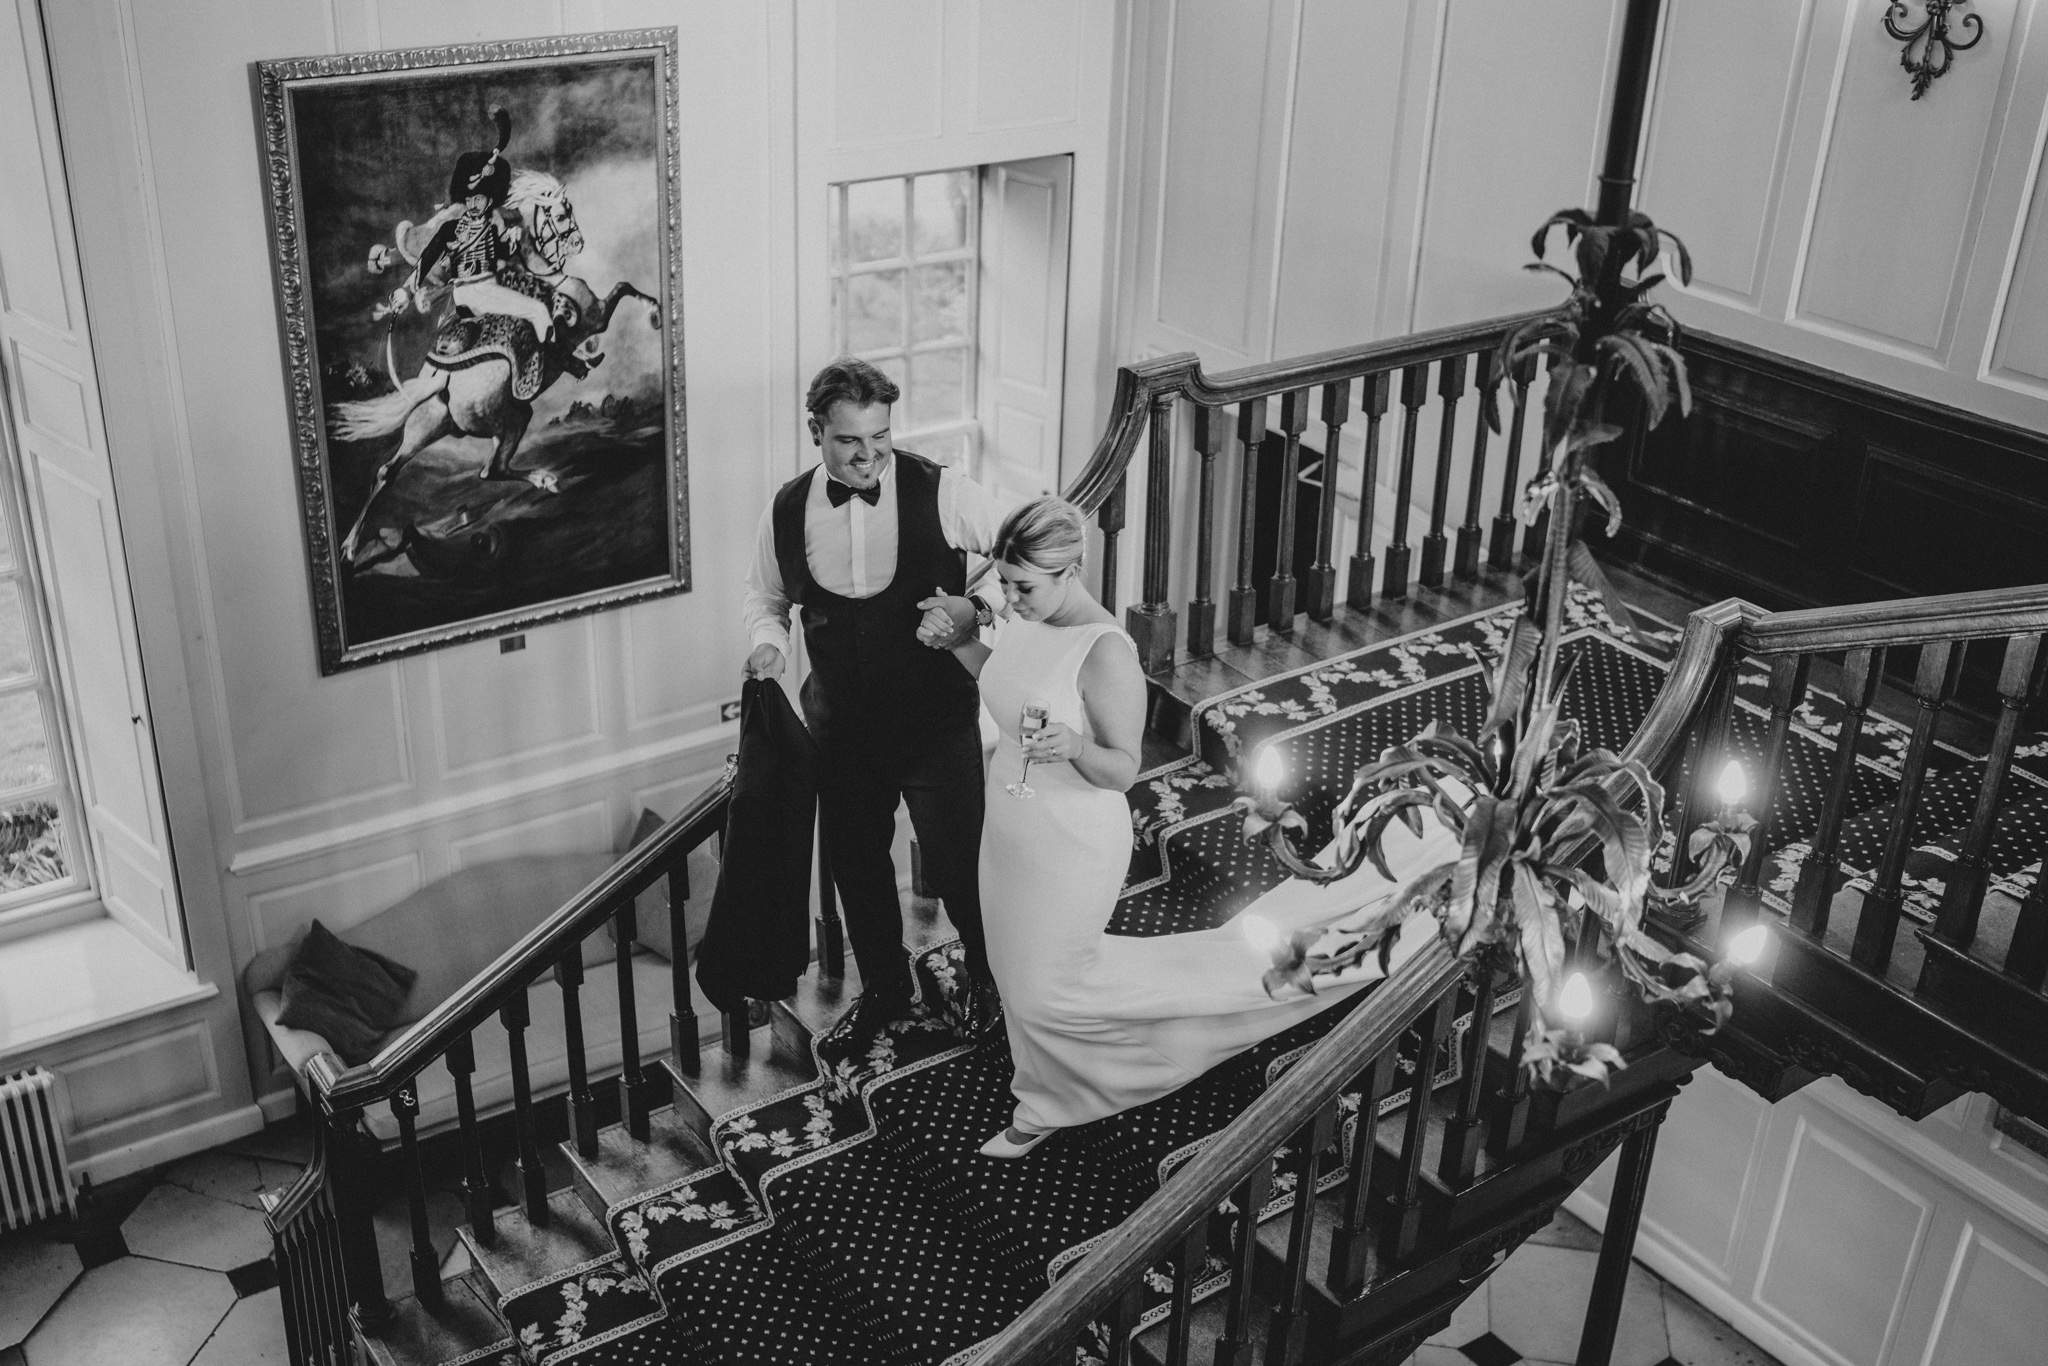 chloe-dan-gosfield-hall-wedding-photographer-grace-elizabeth-colchester-essex-alternative-wedding-photographer-suffolk-norfolk-devon (31 of 41).jpg